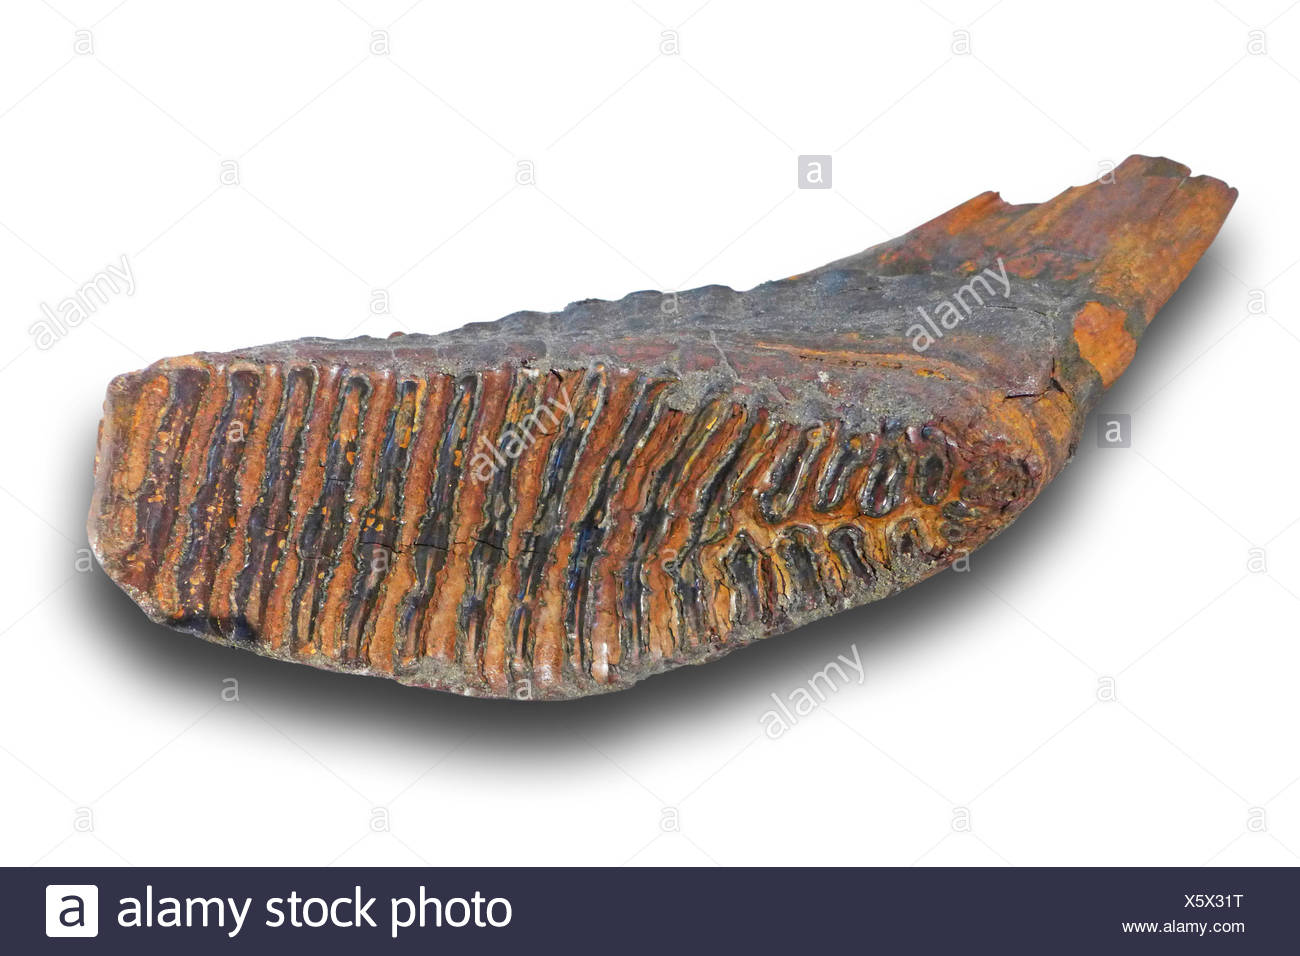 Woolly mammoth (Mammuthus primigenius), molar of a Wooly mammuth (quarternary 100.000-10.000 years), locality: Netherlands - Stock Image